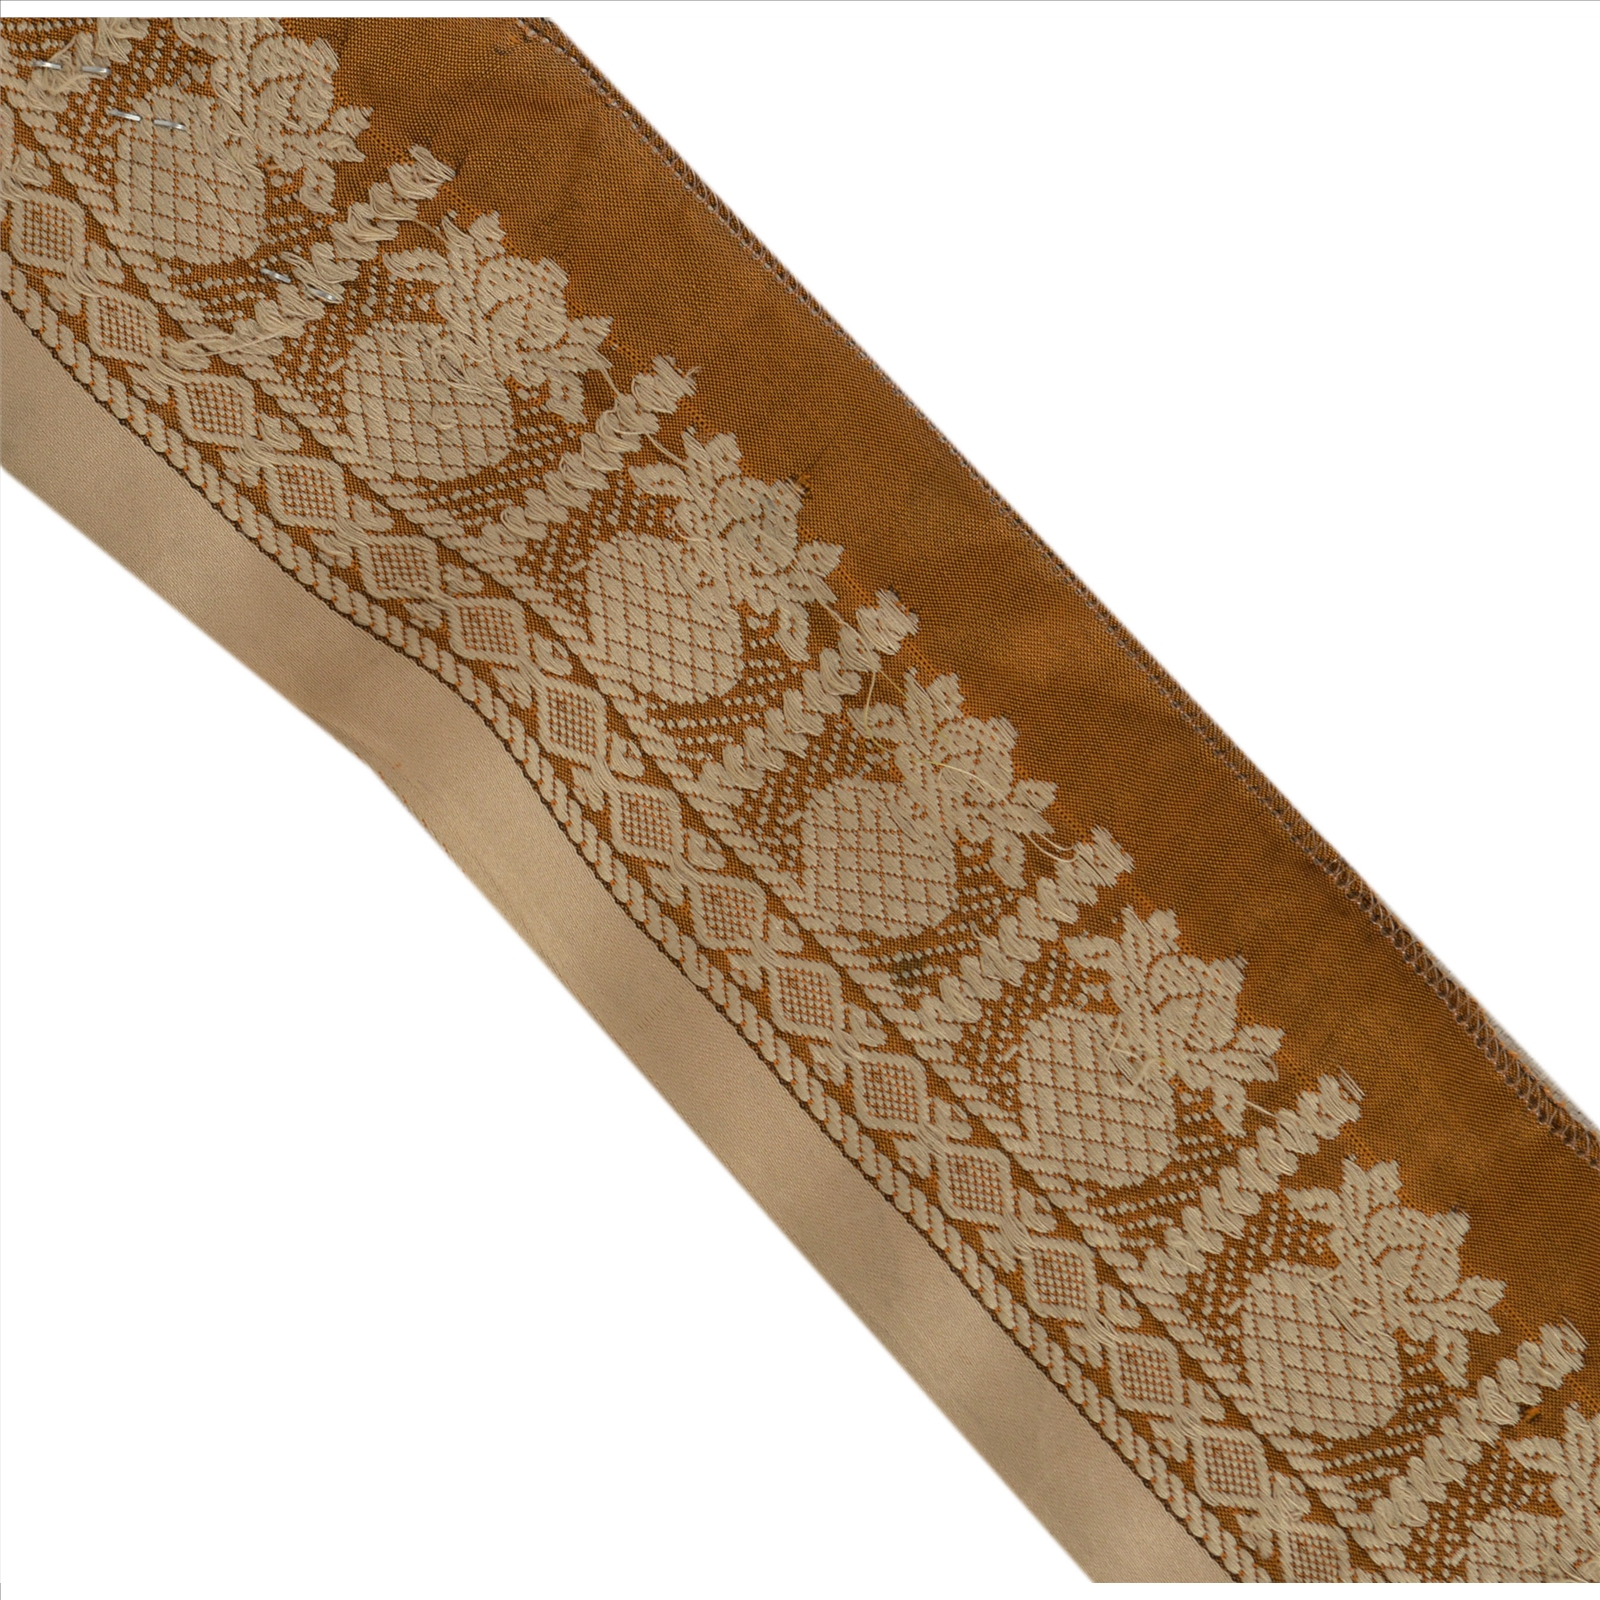 Crafts Embellishments & Finishes Vintage Sari Border Antique Embroidered Woven Trim Sewing Saffron Lace